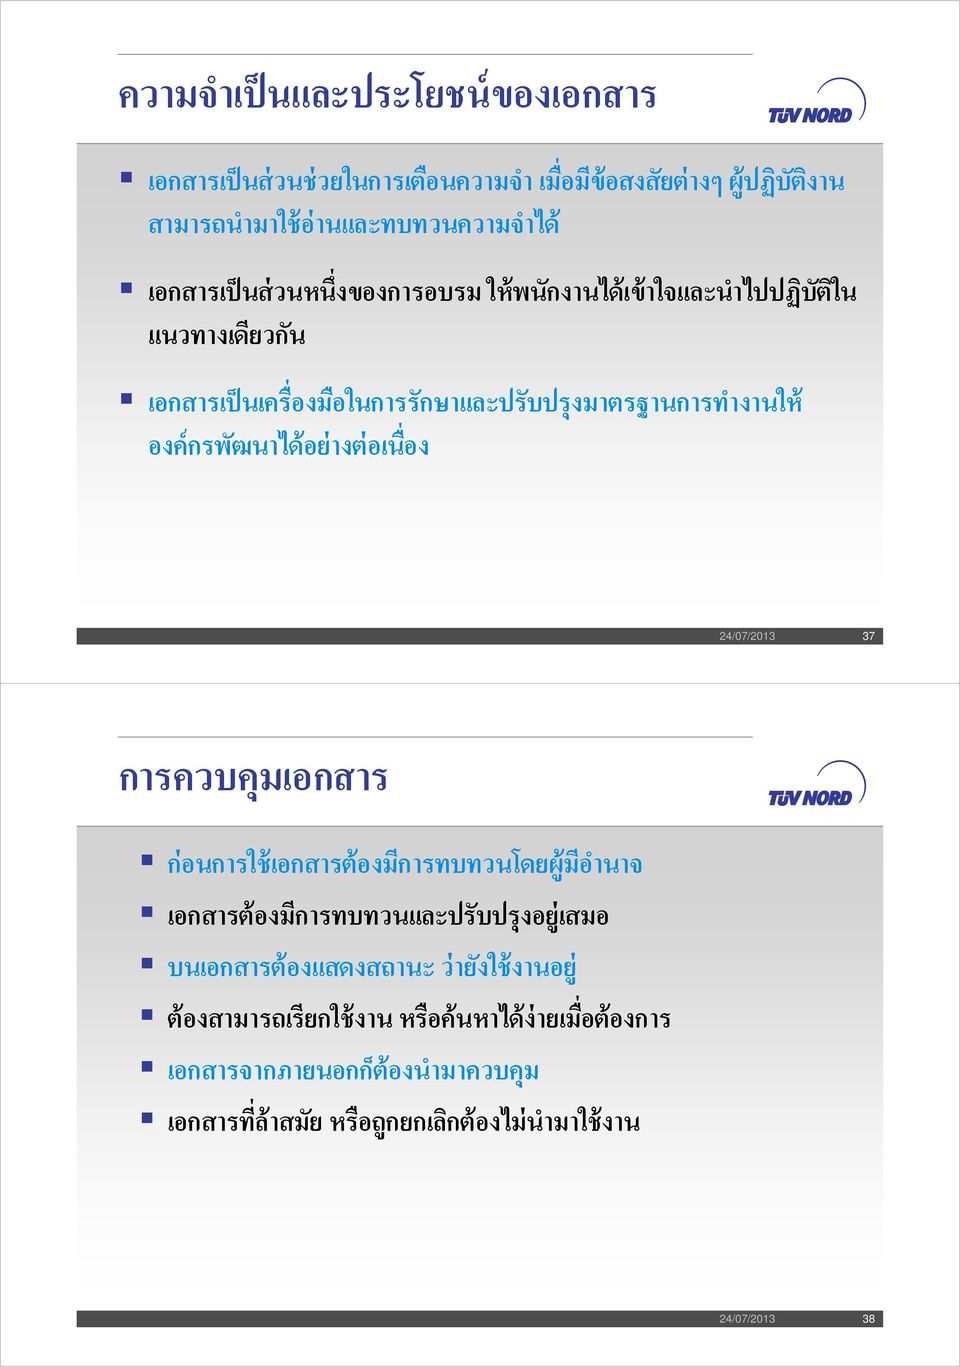 Introduction to ISO 9001:2008 Quality Management System ระบบการจ ดการด านค ณภาพ - PDF